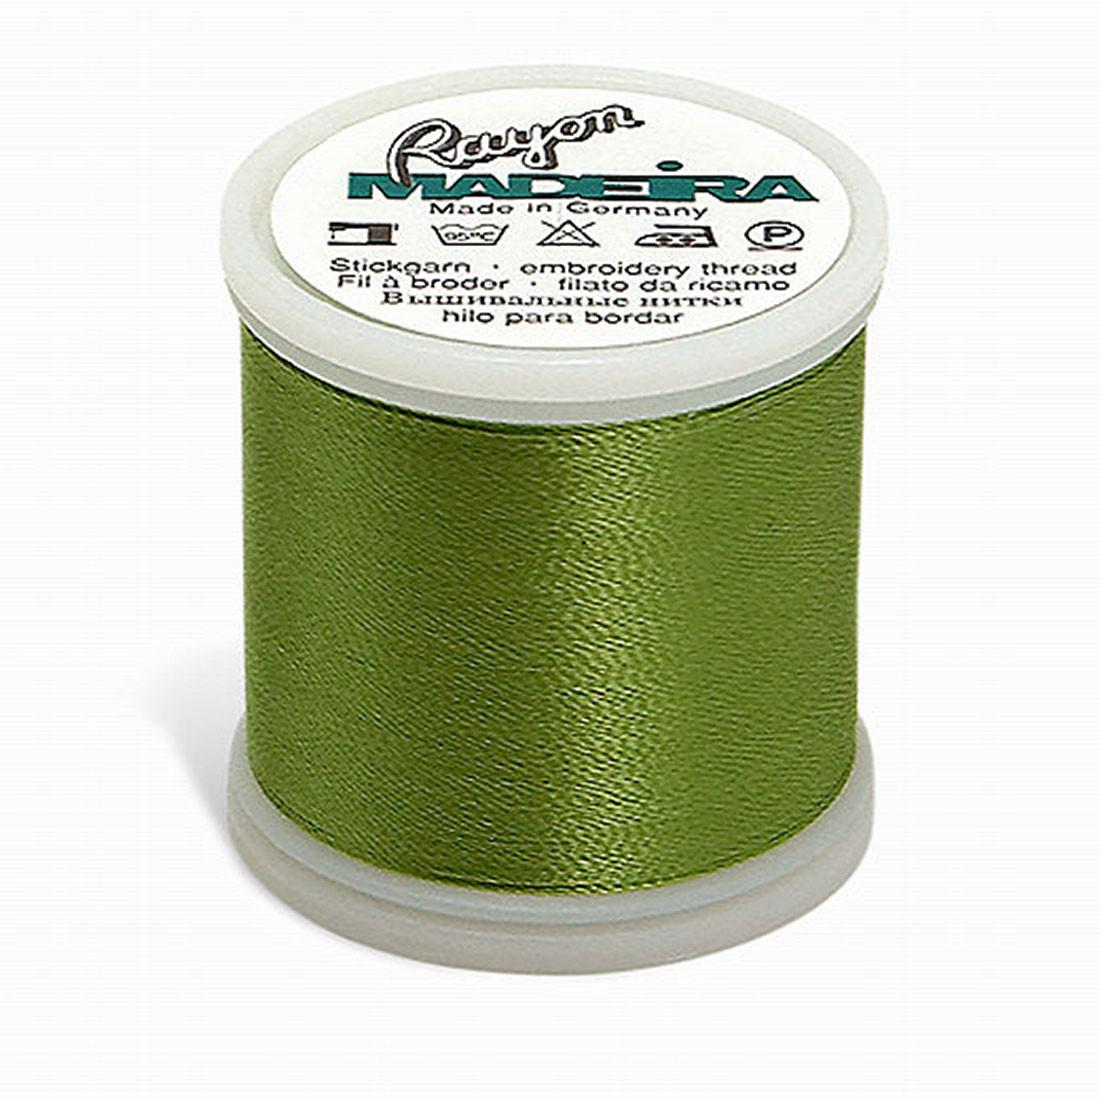 Madeira Rayon - Machine Embroidery Thread - 220YD Spool - Avocado